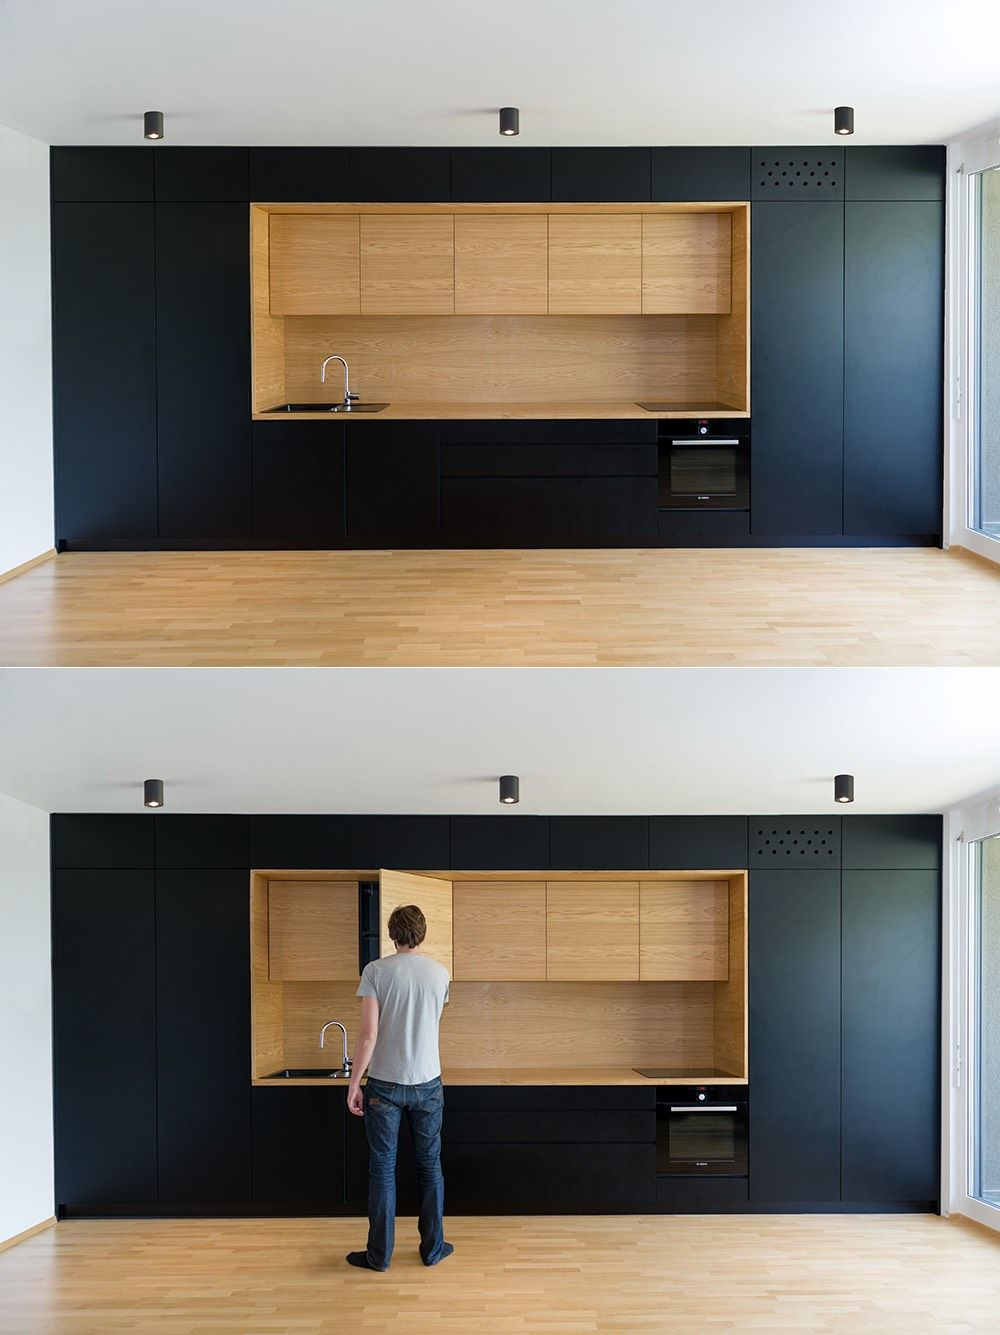 Küchenartikel Erste Wohnung Black White Wood Kitchens Ideas Inspiration årchitëcturė